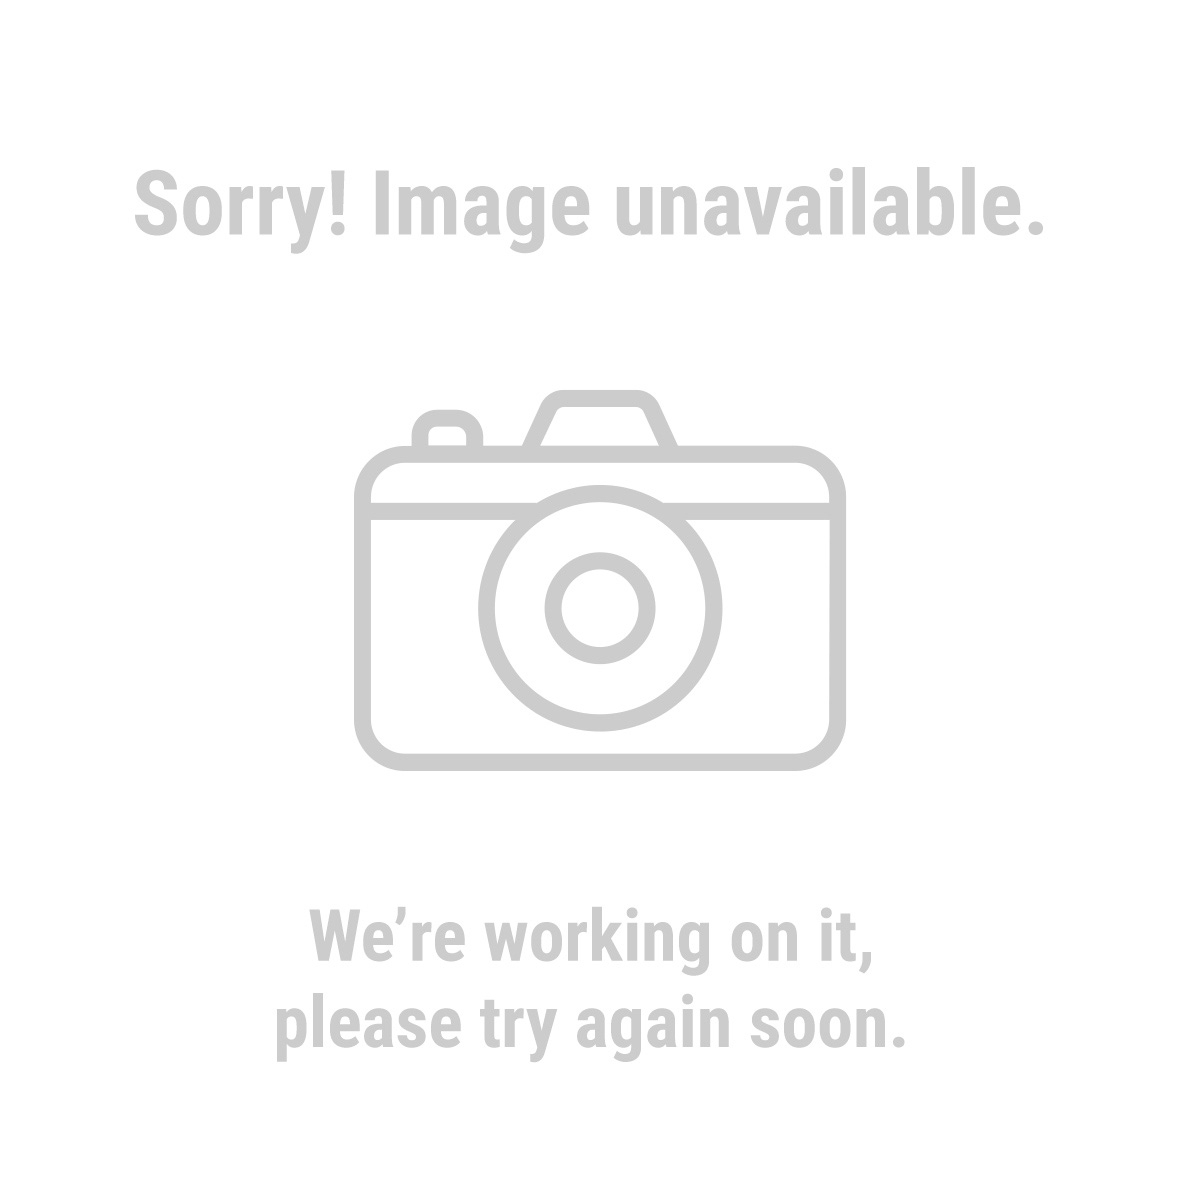 HFT 61862 25 ft. x 14 Gauge Green Outdoor Extension Cord